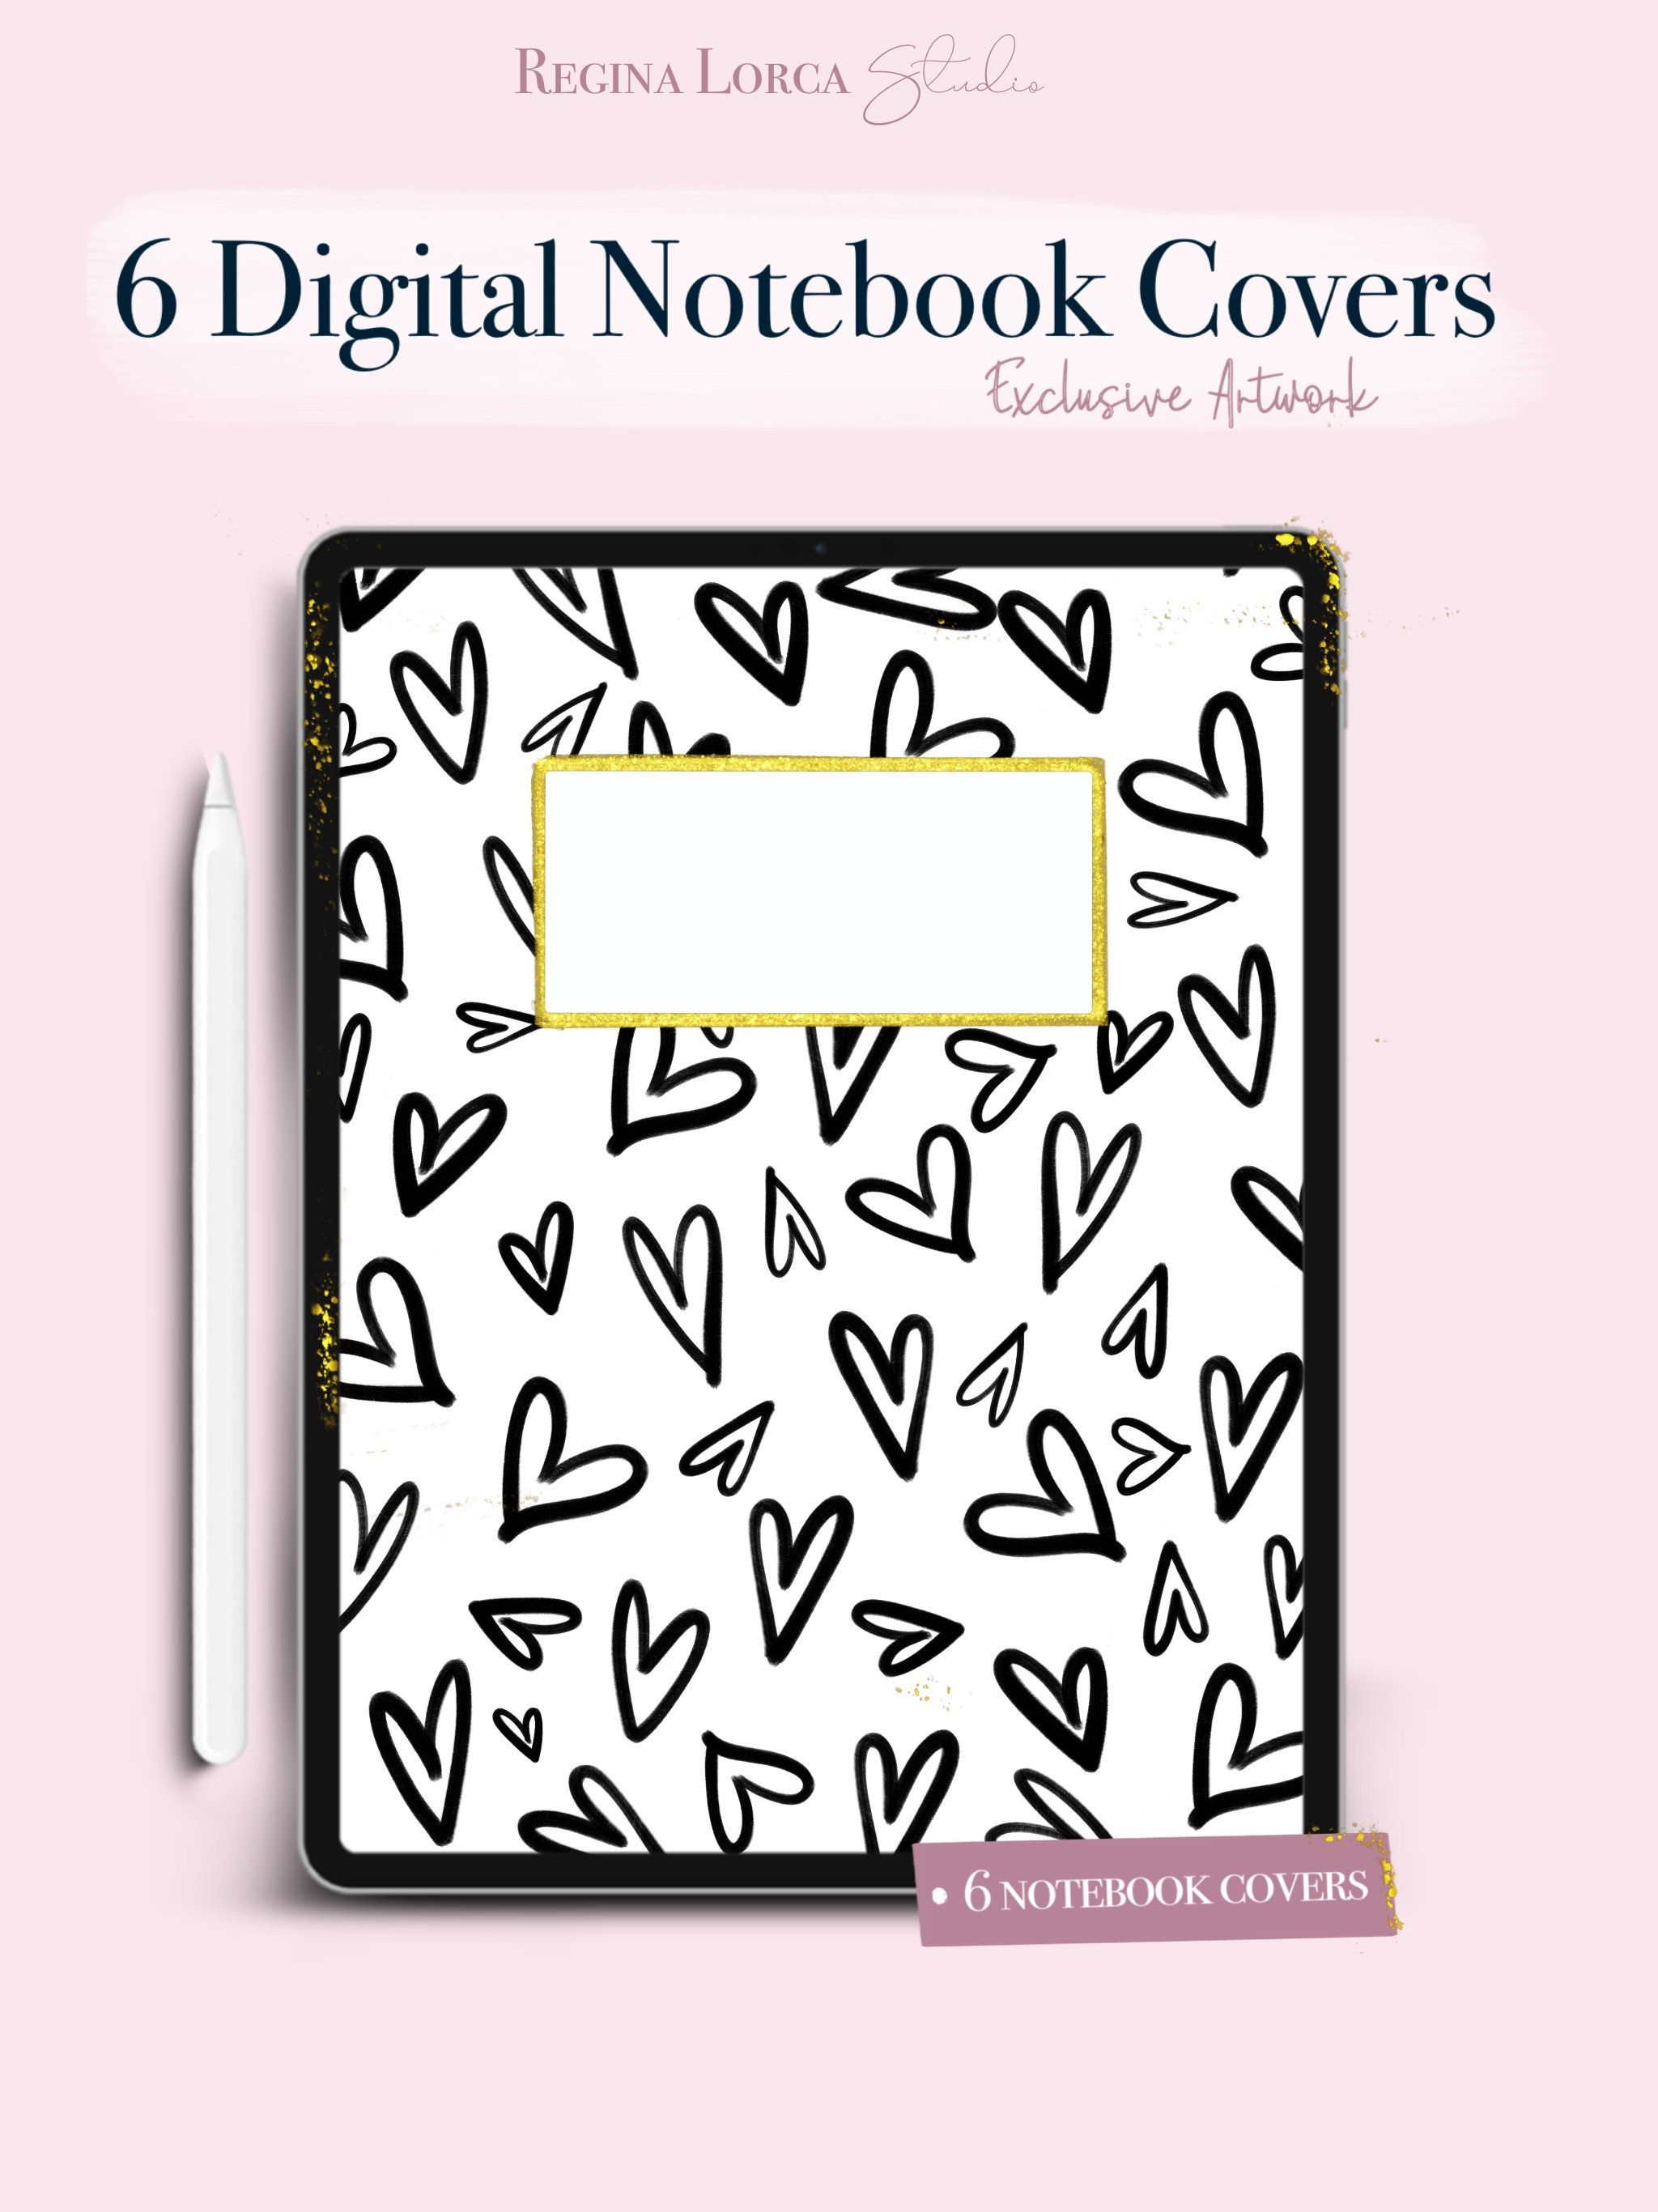 Black and White Notebook Covers, 6 cute digital notebook